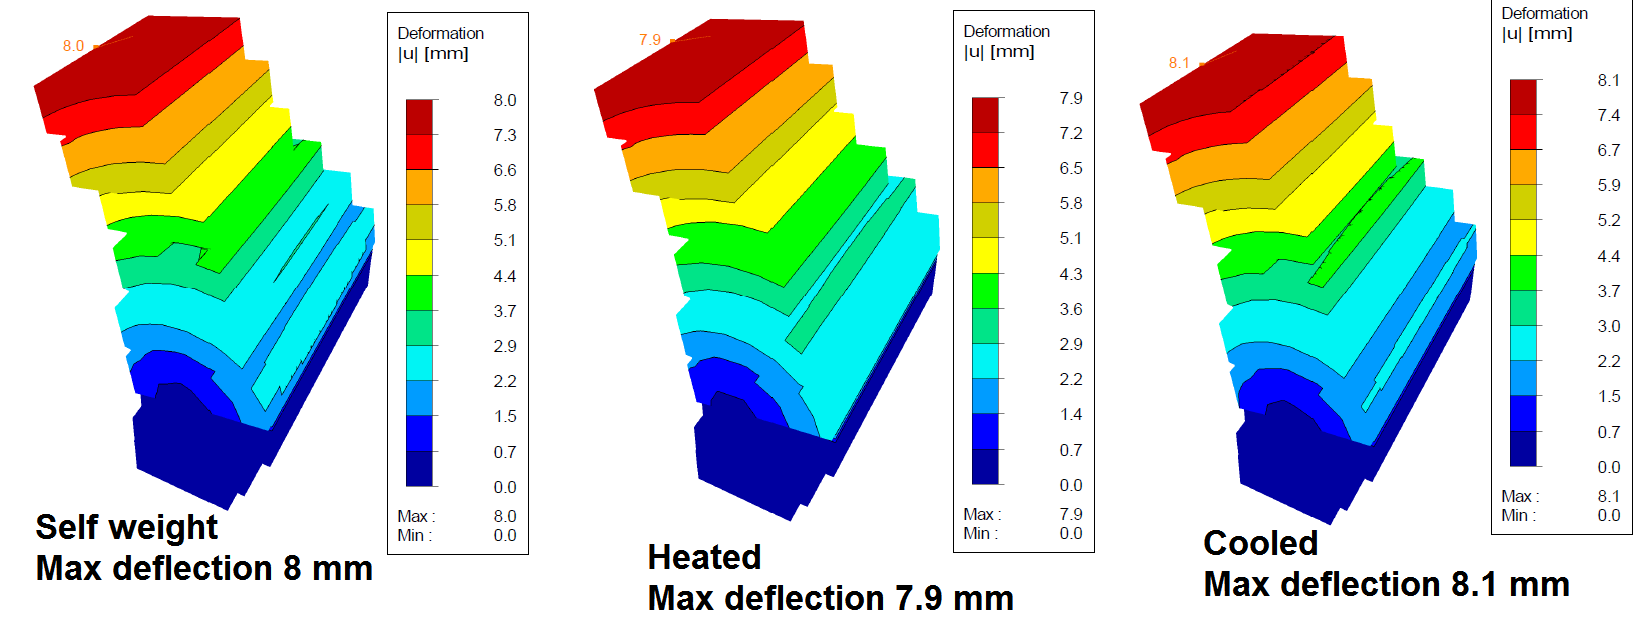 Simulation of stone wall behavior under self-weight and temperature loads